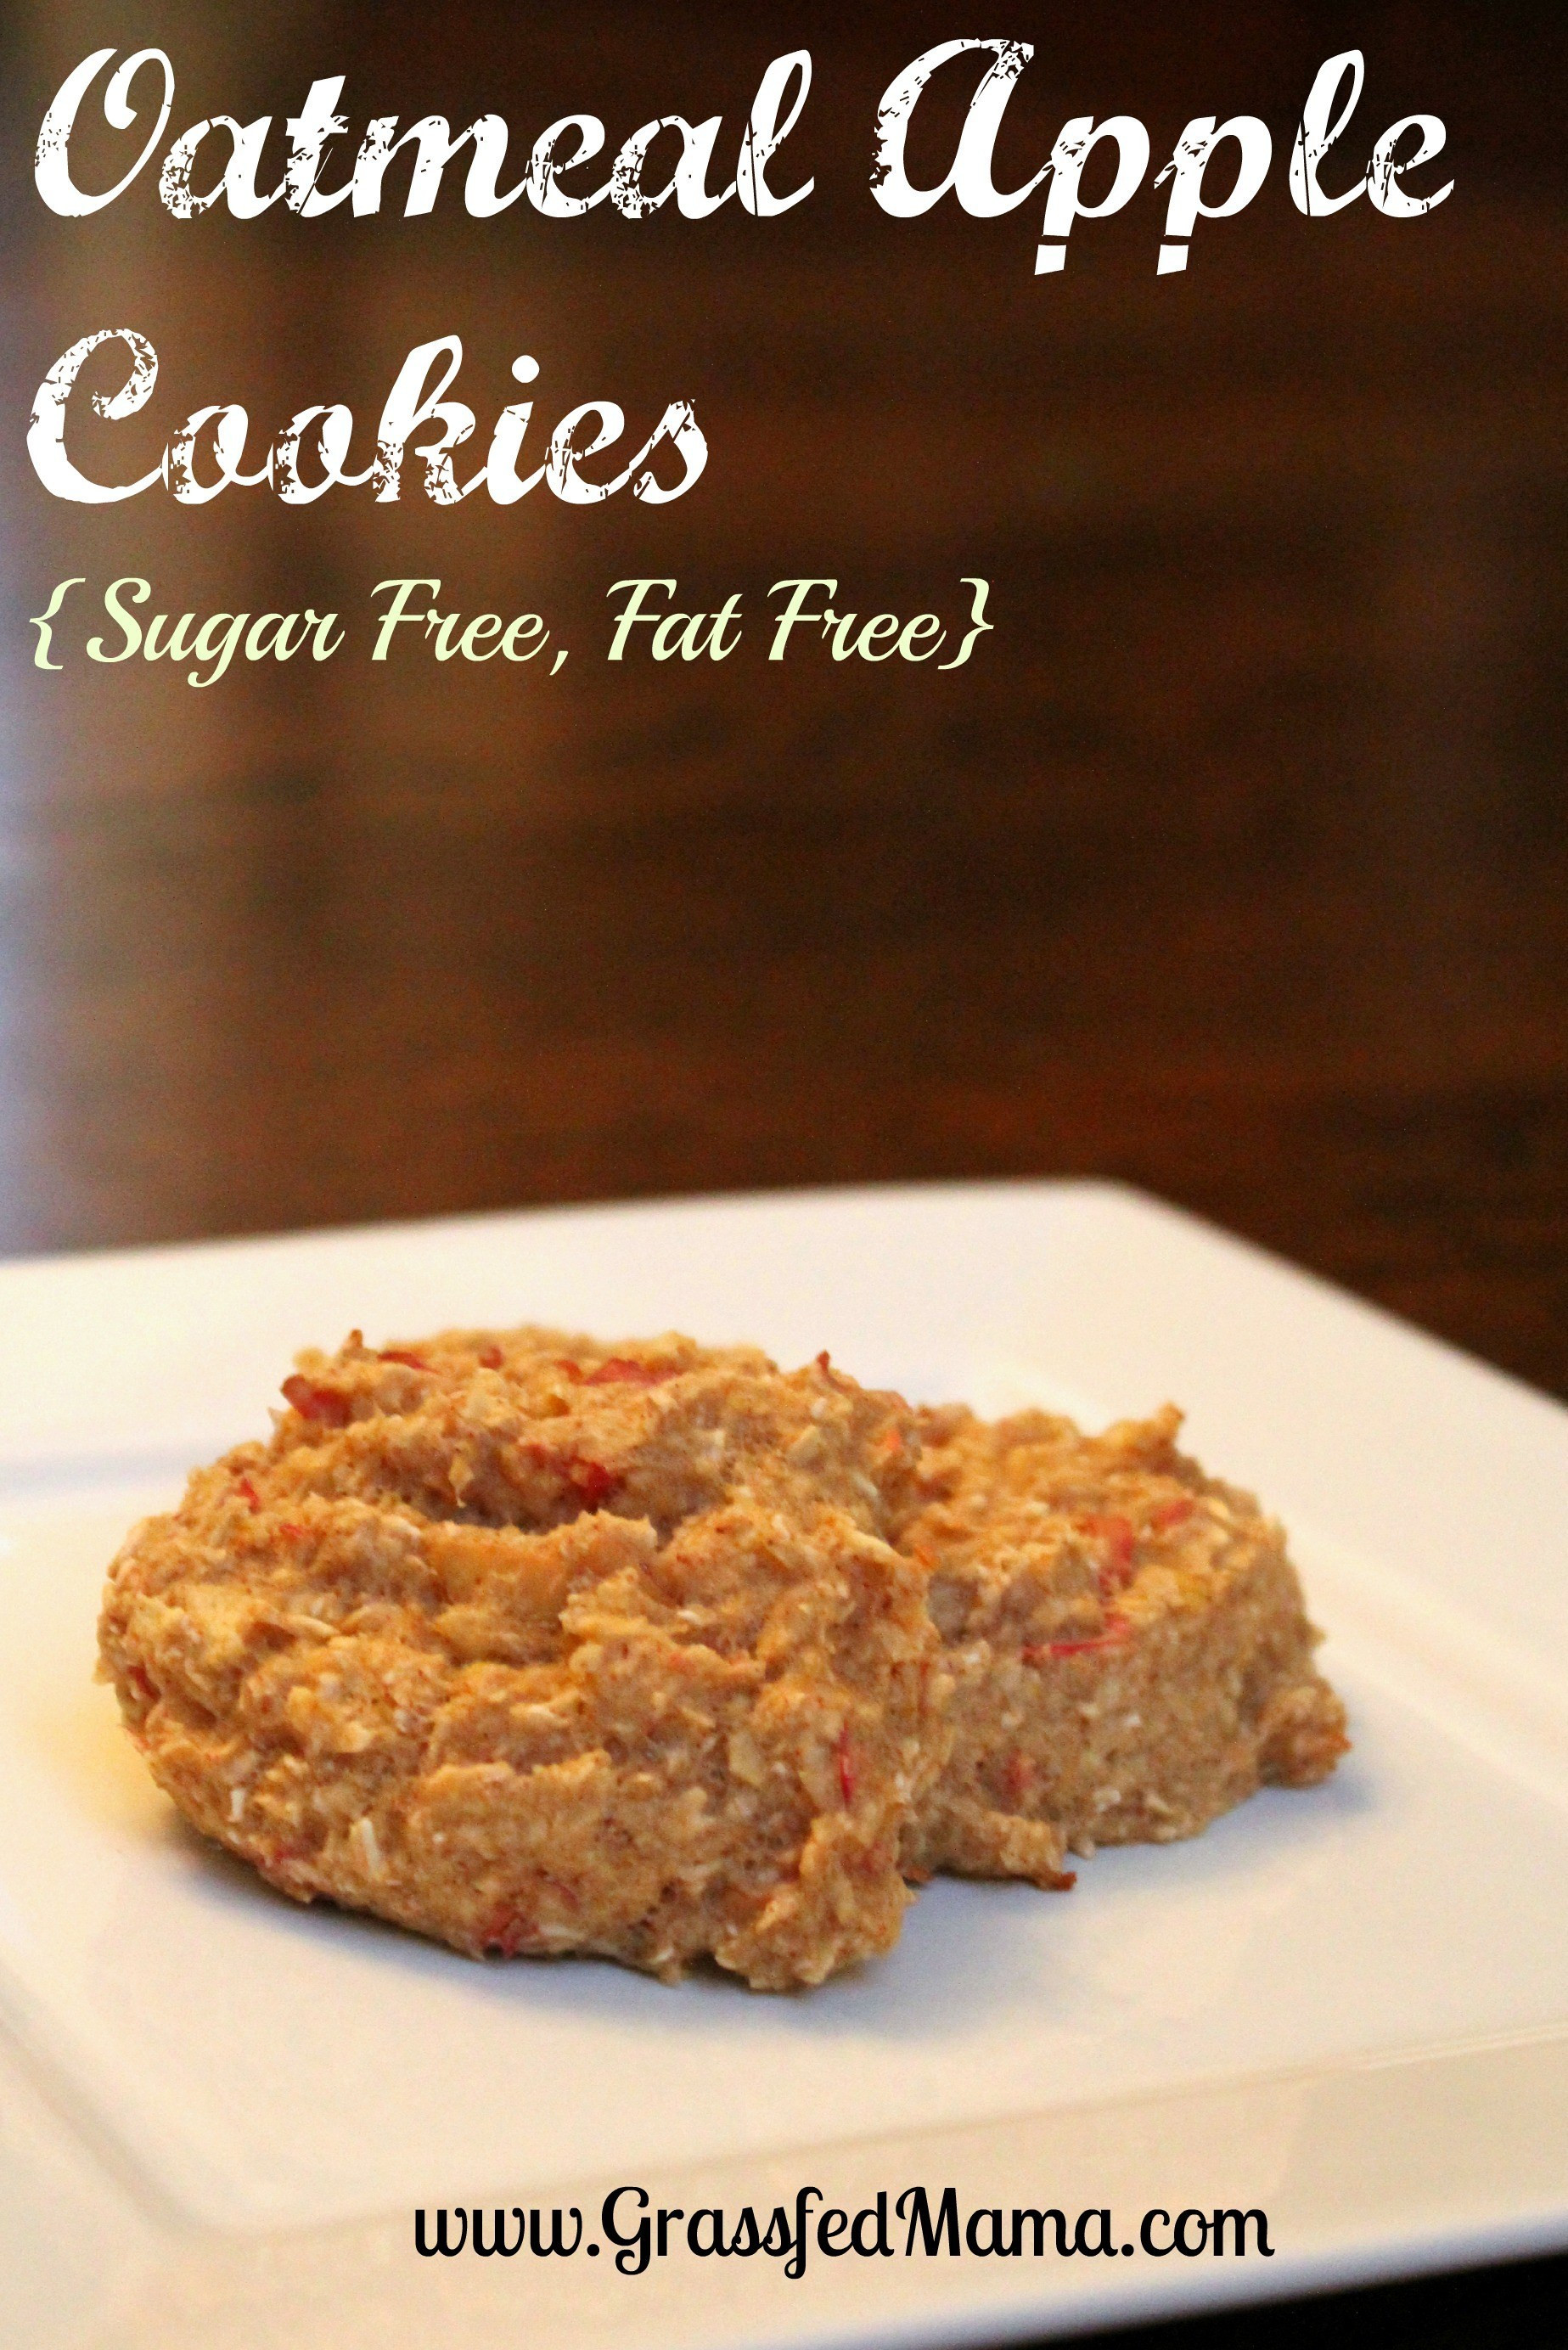 Low Cholesterol Low Sugar Recipes  Low Fat Low Sugar Oatmeal Apple Cookies Grassfed Mama